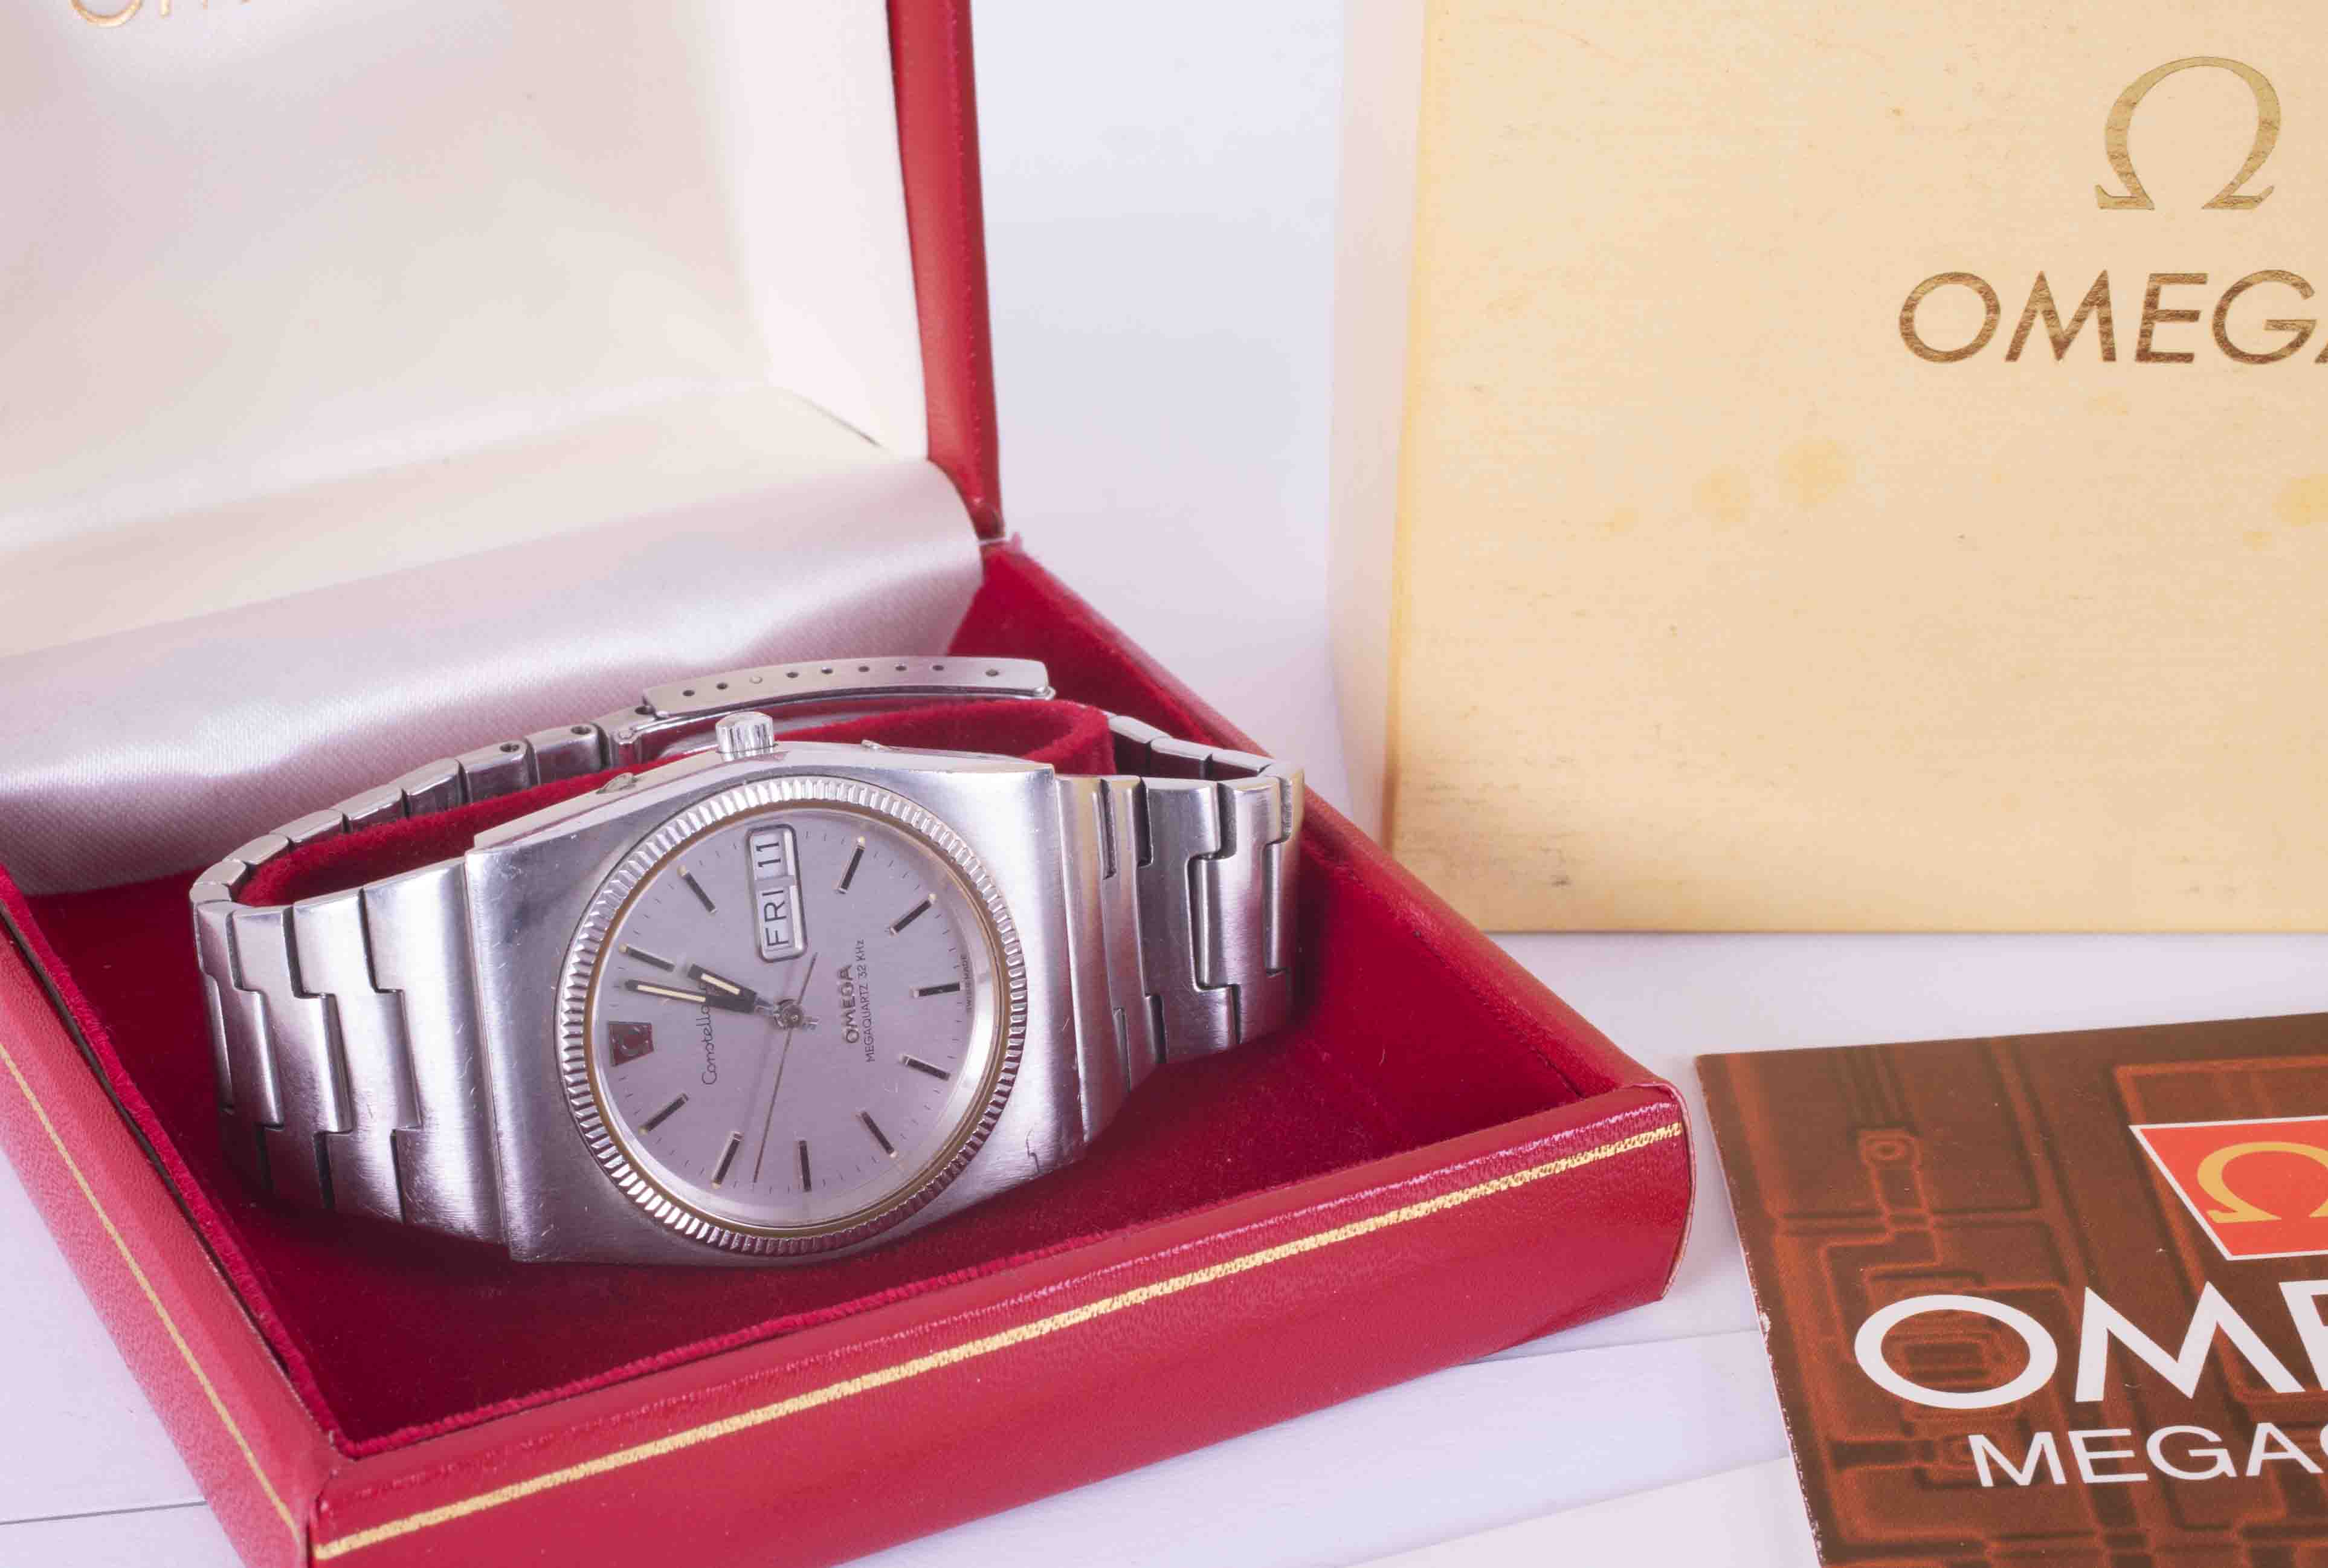 Omega, a gents stainless steel Constellation wristwatch, mega quartz, 196.0030, with original box, - Image 3 of 3